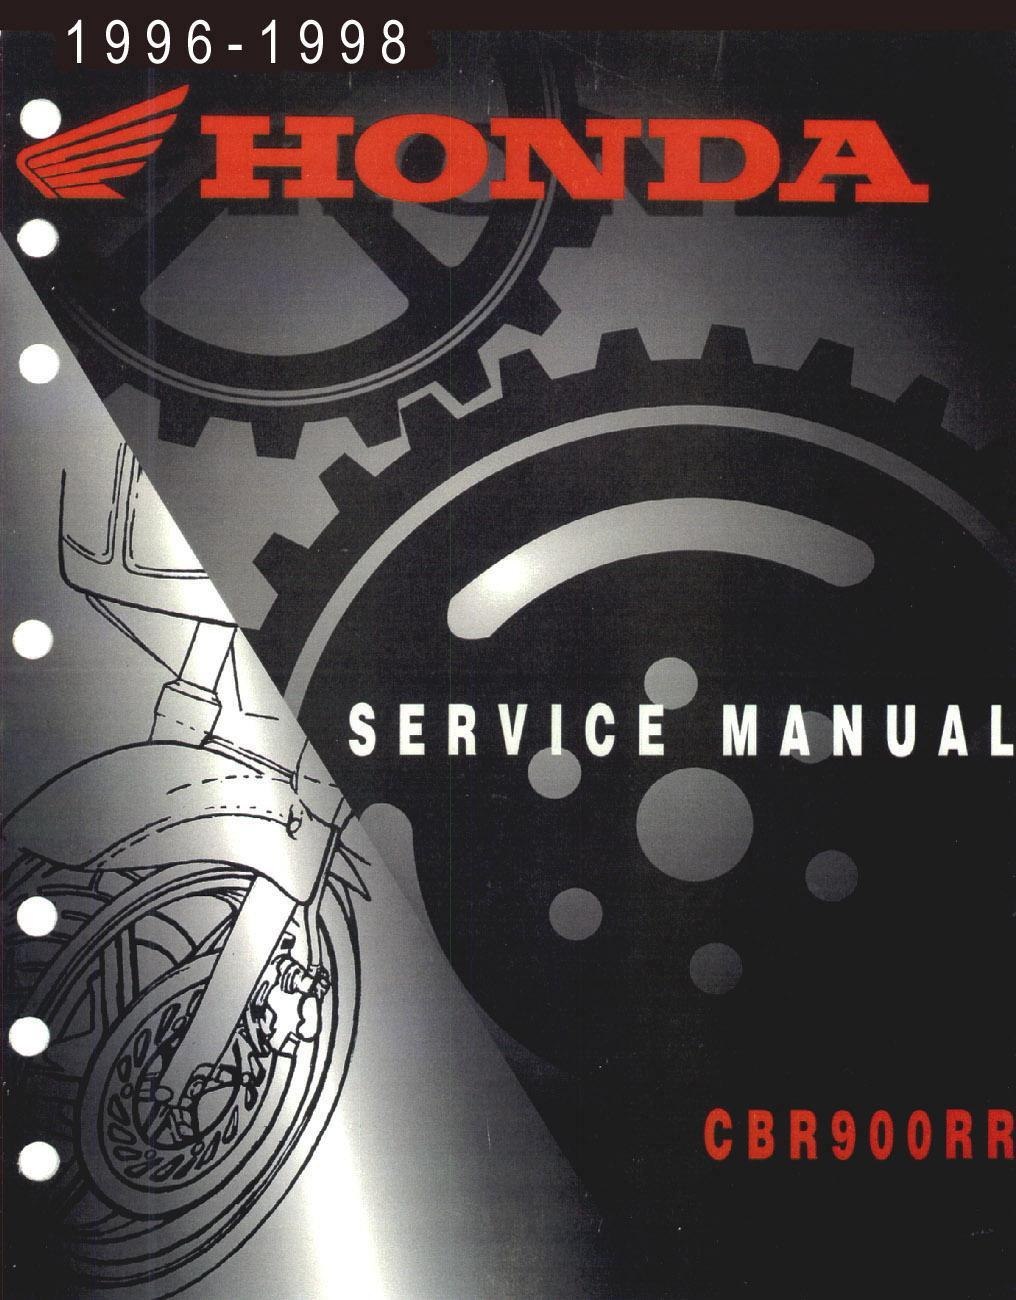 Workshop Manual for Honda CBR900RR (1996-1998)